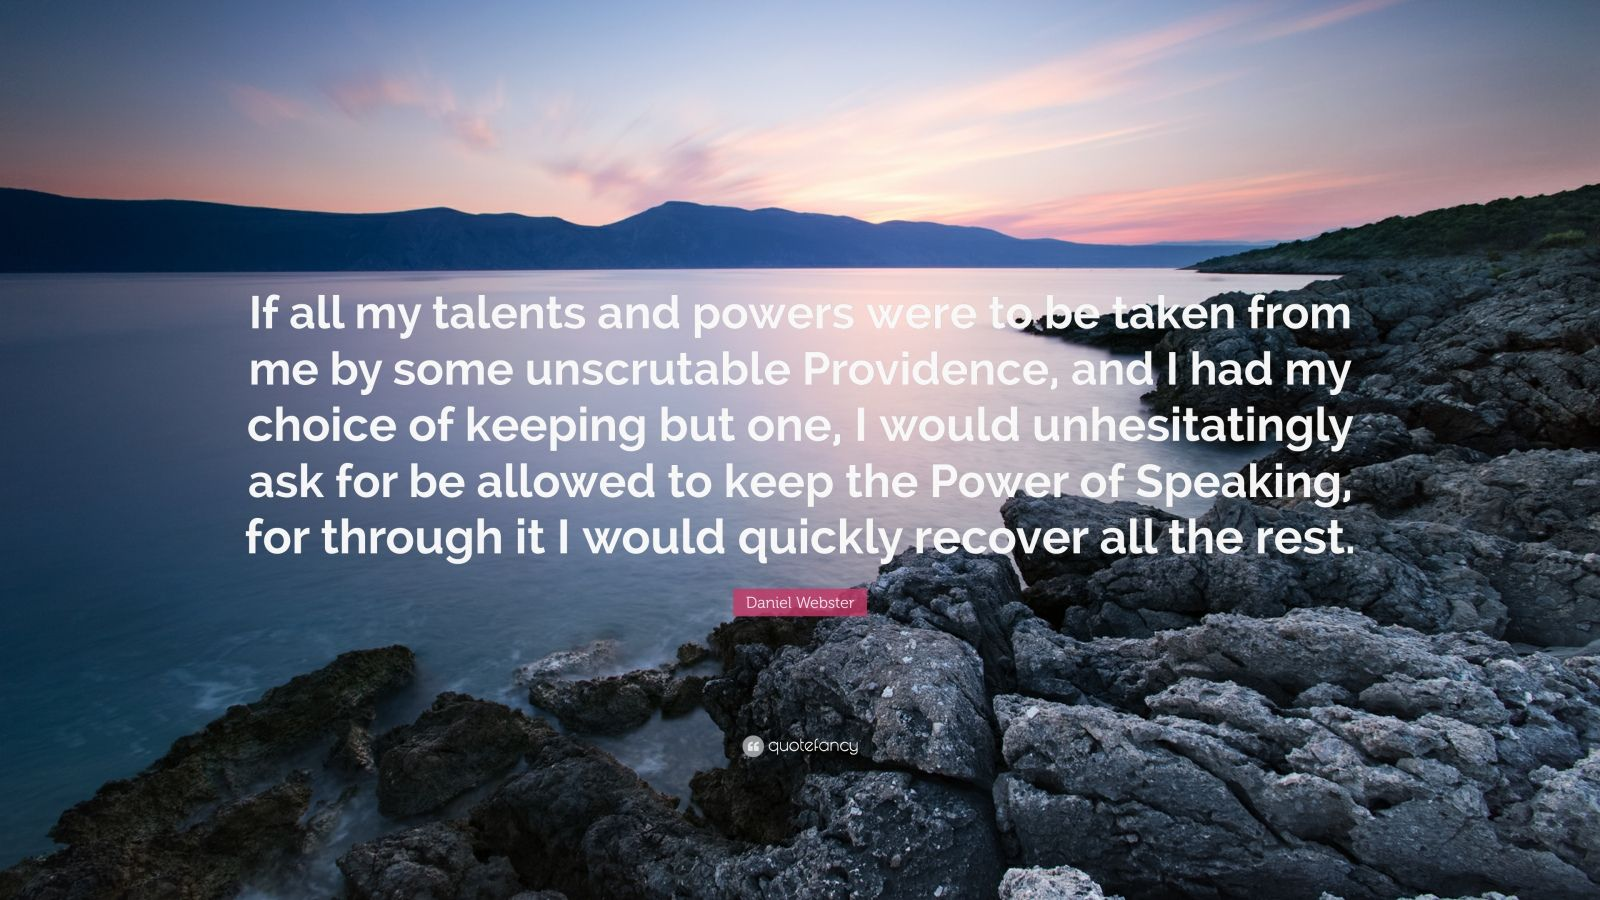 """Daniel Webster Quote: """"If all my talents and powers were to be taken from me by some unscrutable Providence, and I had my choice of keeping but one, I would unhesitatingly ask for be allowed to keep the Power of Speaking, for through it I would quickly recover all the rest."""""""